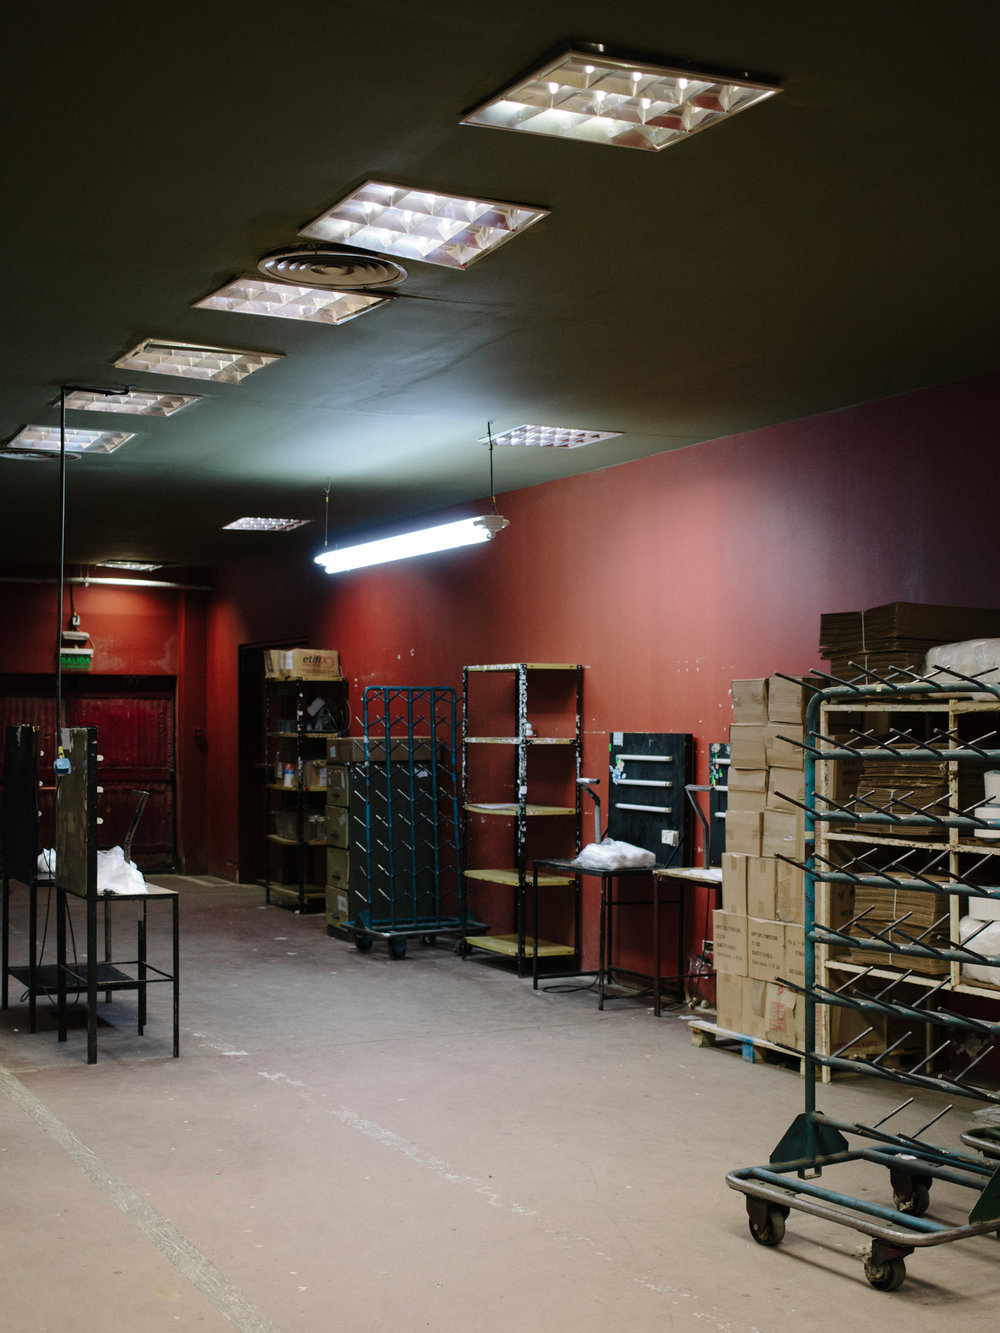 An interior of ' Hilanderia Fueguina '. Founded in 1984 it's the only textile factory in Ushuaia. It works all year around 24/7 producing textile reels for the clothes factories in the north of the country.